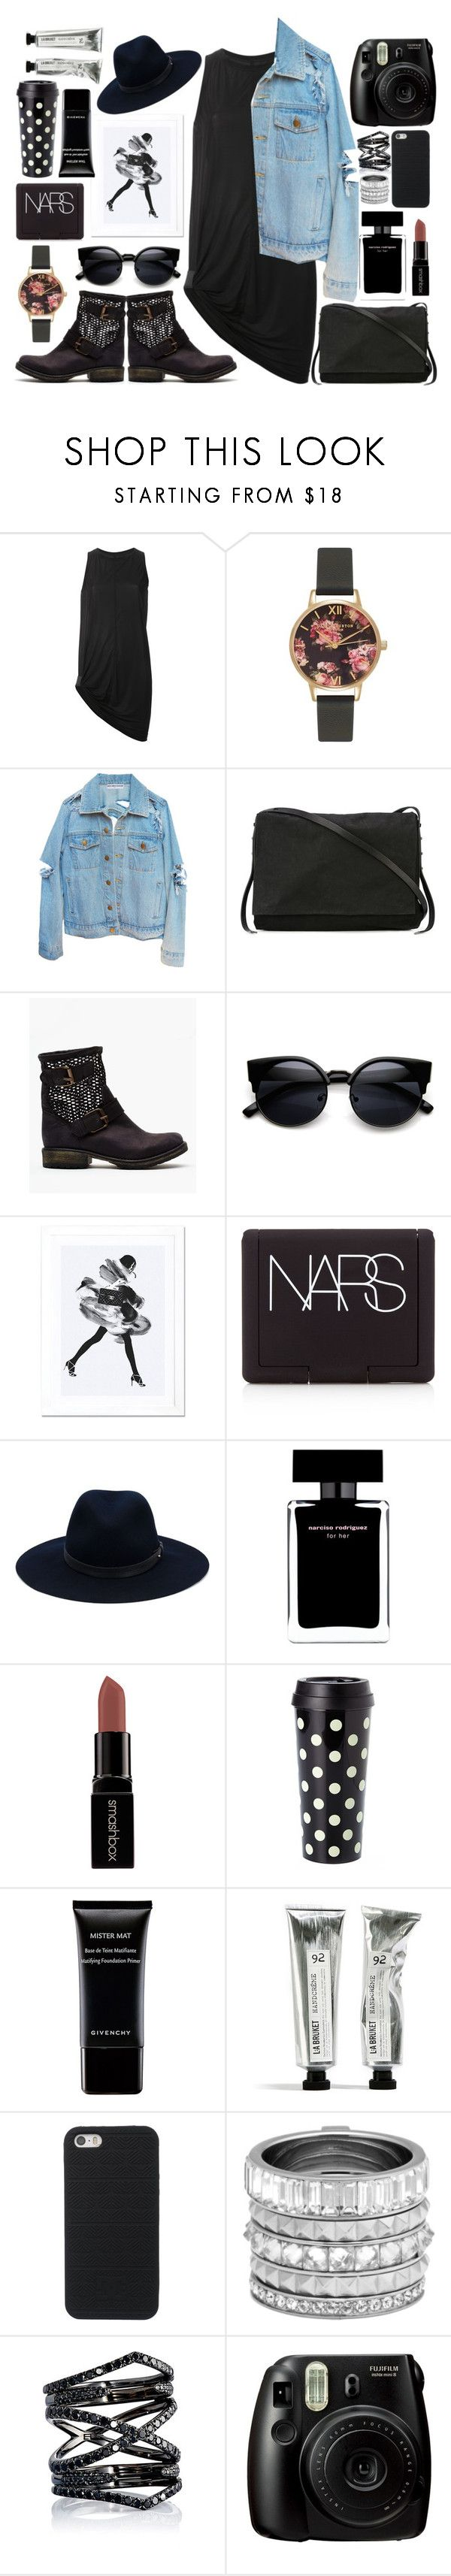 """My Secret Life."" by swanniboo on Polyvore featuring Rick Owens, Olivia Burton, Steve Madden, iCanvas, NARS Cosmetics, rag & bone, Narciso Rodriguez, Smashbox, Kate Spade and Givenchy"